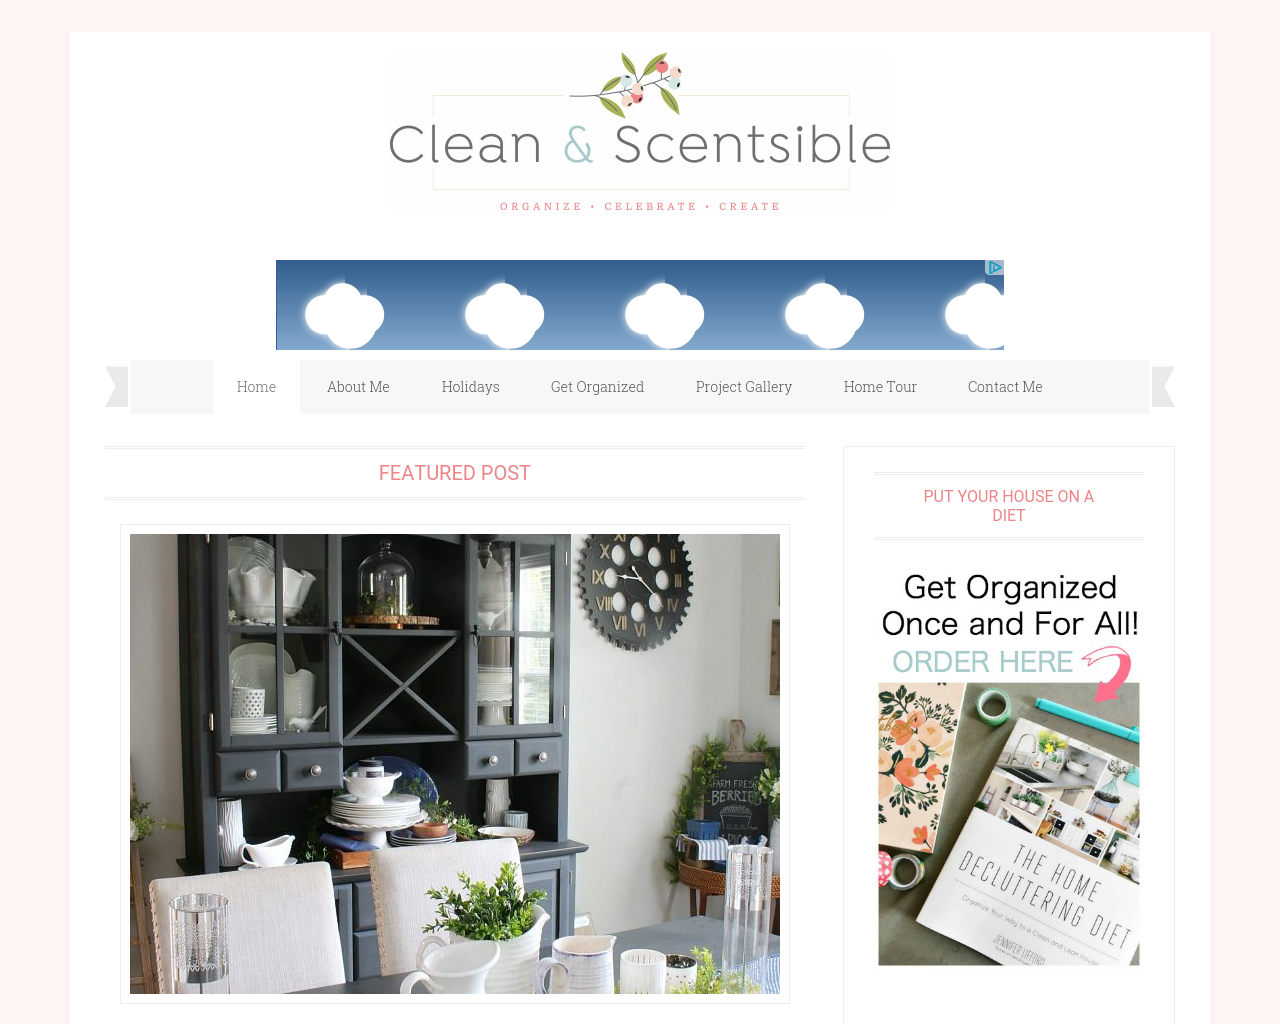 Clean-&-Scentsible-Advertising-Reviews-Pricing